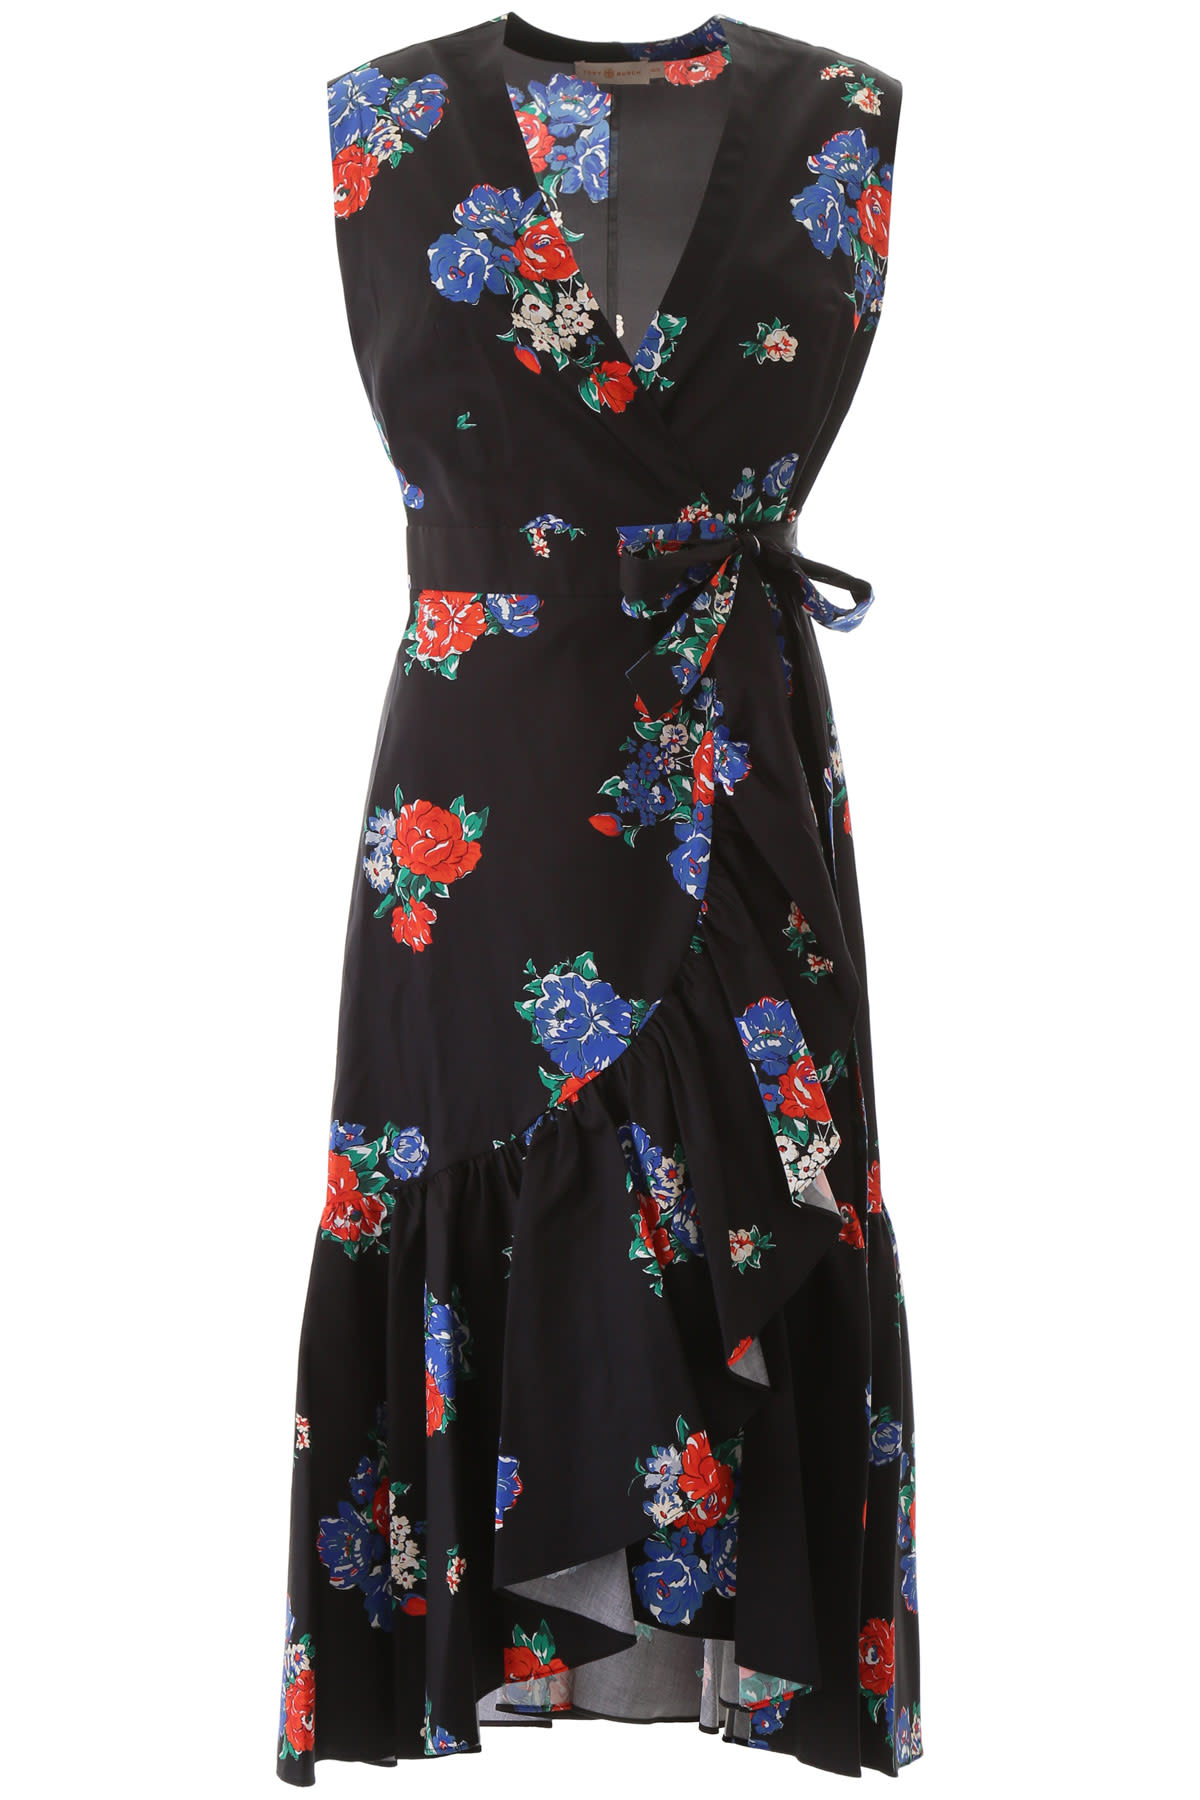 Buy Tory Burch Flower Print Wrap Dress online, shop Tory Burch with free shipping